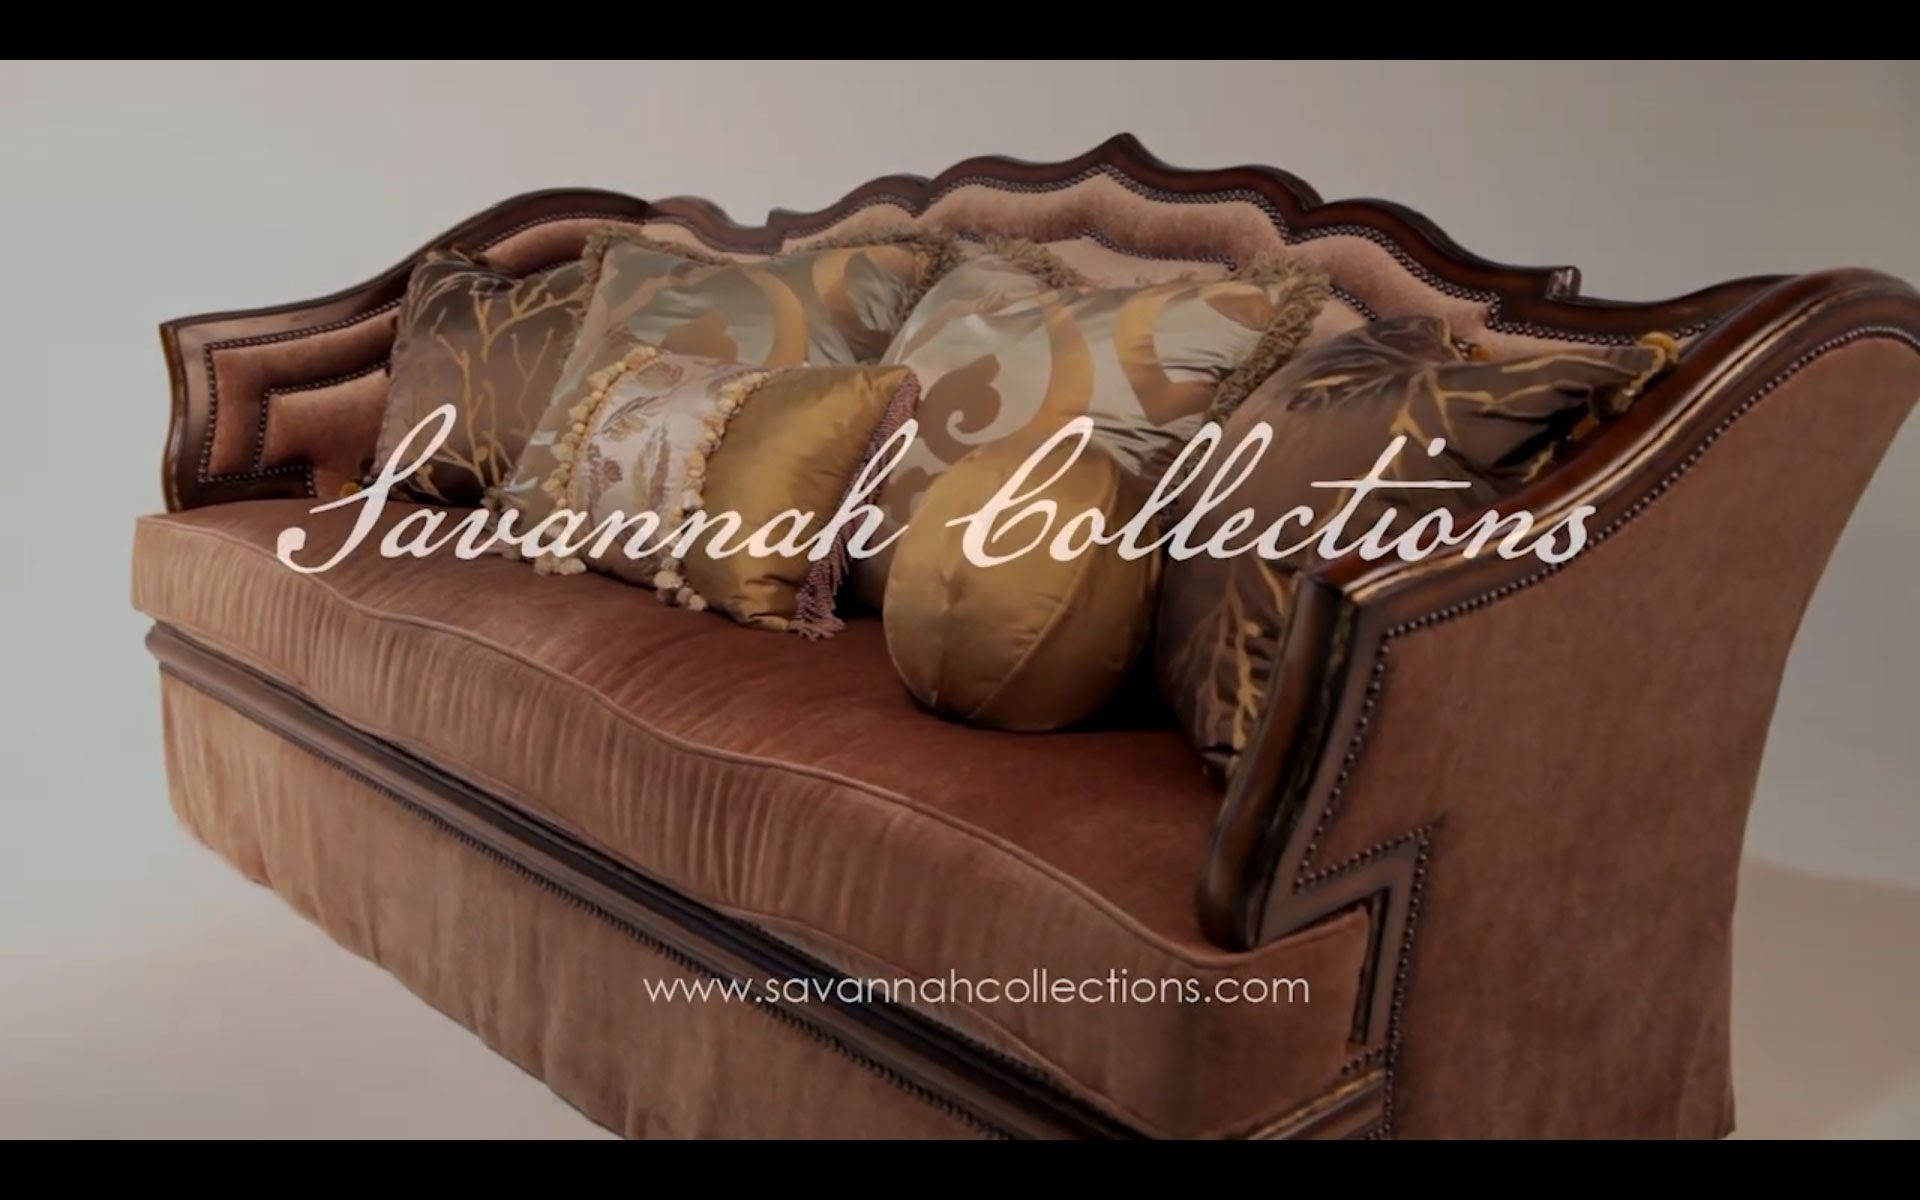 Italian Furniture Sofasavannah Collections Mathis Brothers – Youtube Regarding Mathis Brothers Sectional Sofas (View 6 of 10)